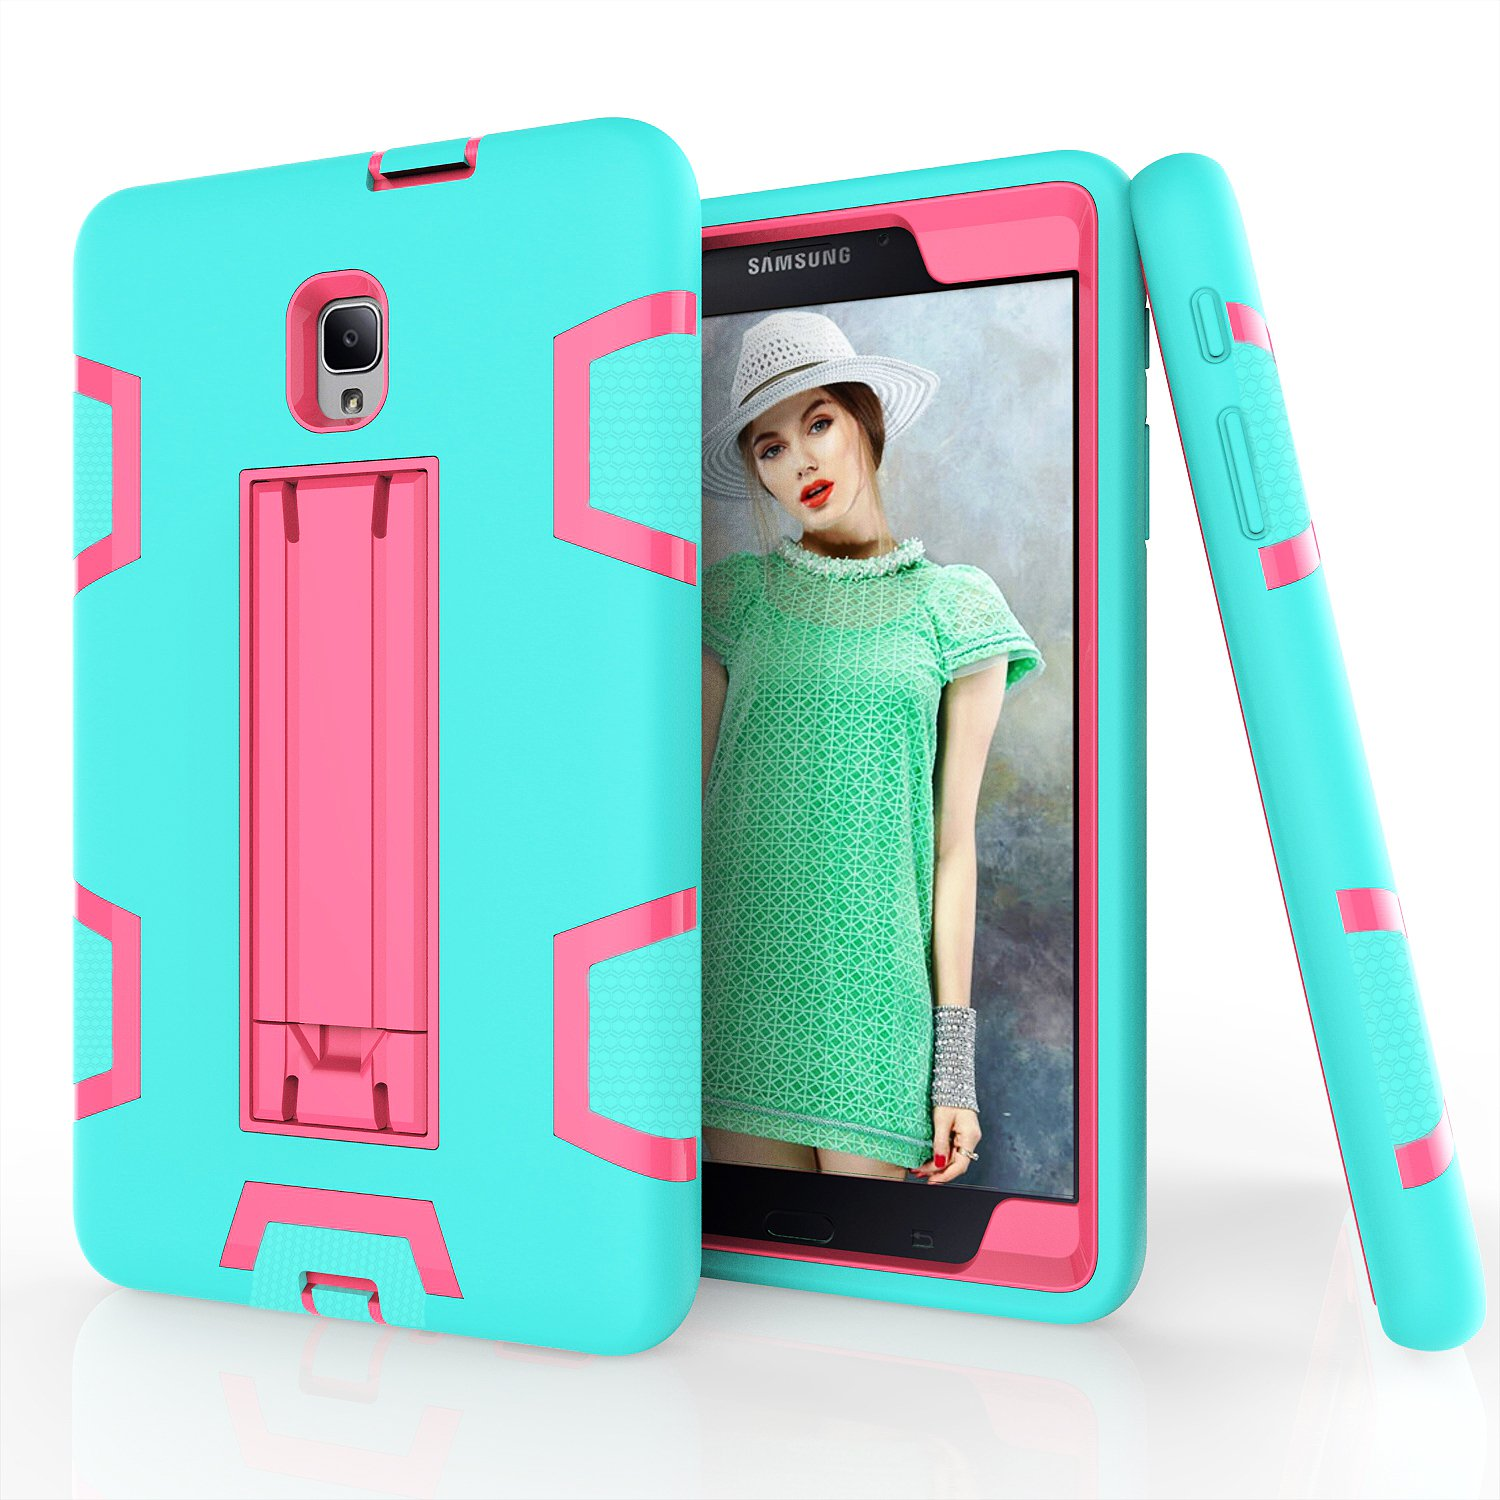 PPSHA Samsung Galaxy Tab A 8.0 2017 Case, High Impact Armor Heavy Duty Hybrid Shockproof Protection Cover Built With Stand for Galaxy Tab A 8.0 (SM-T380/T385) 2017 Release (Teal+Rose) by PPSHA (Image #1)